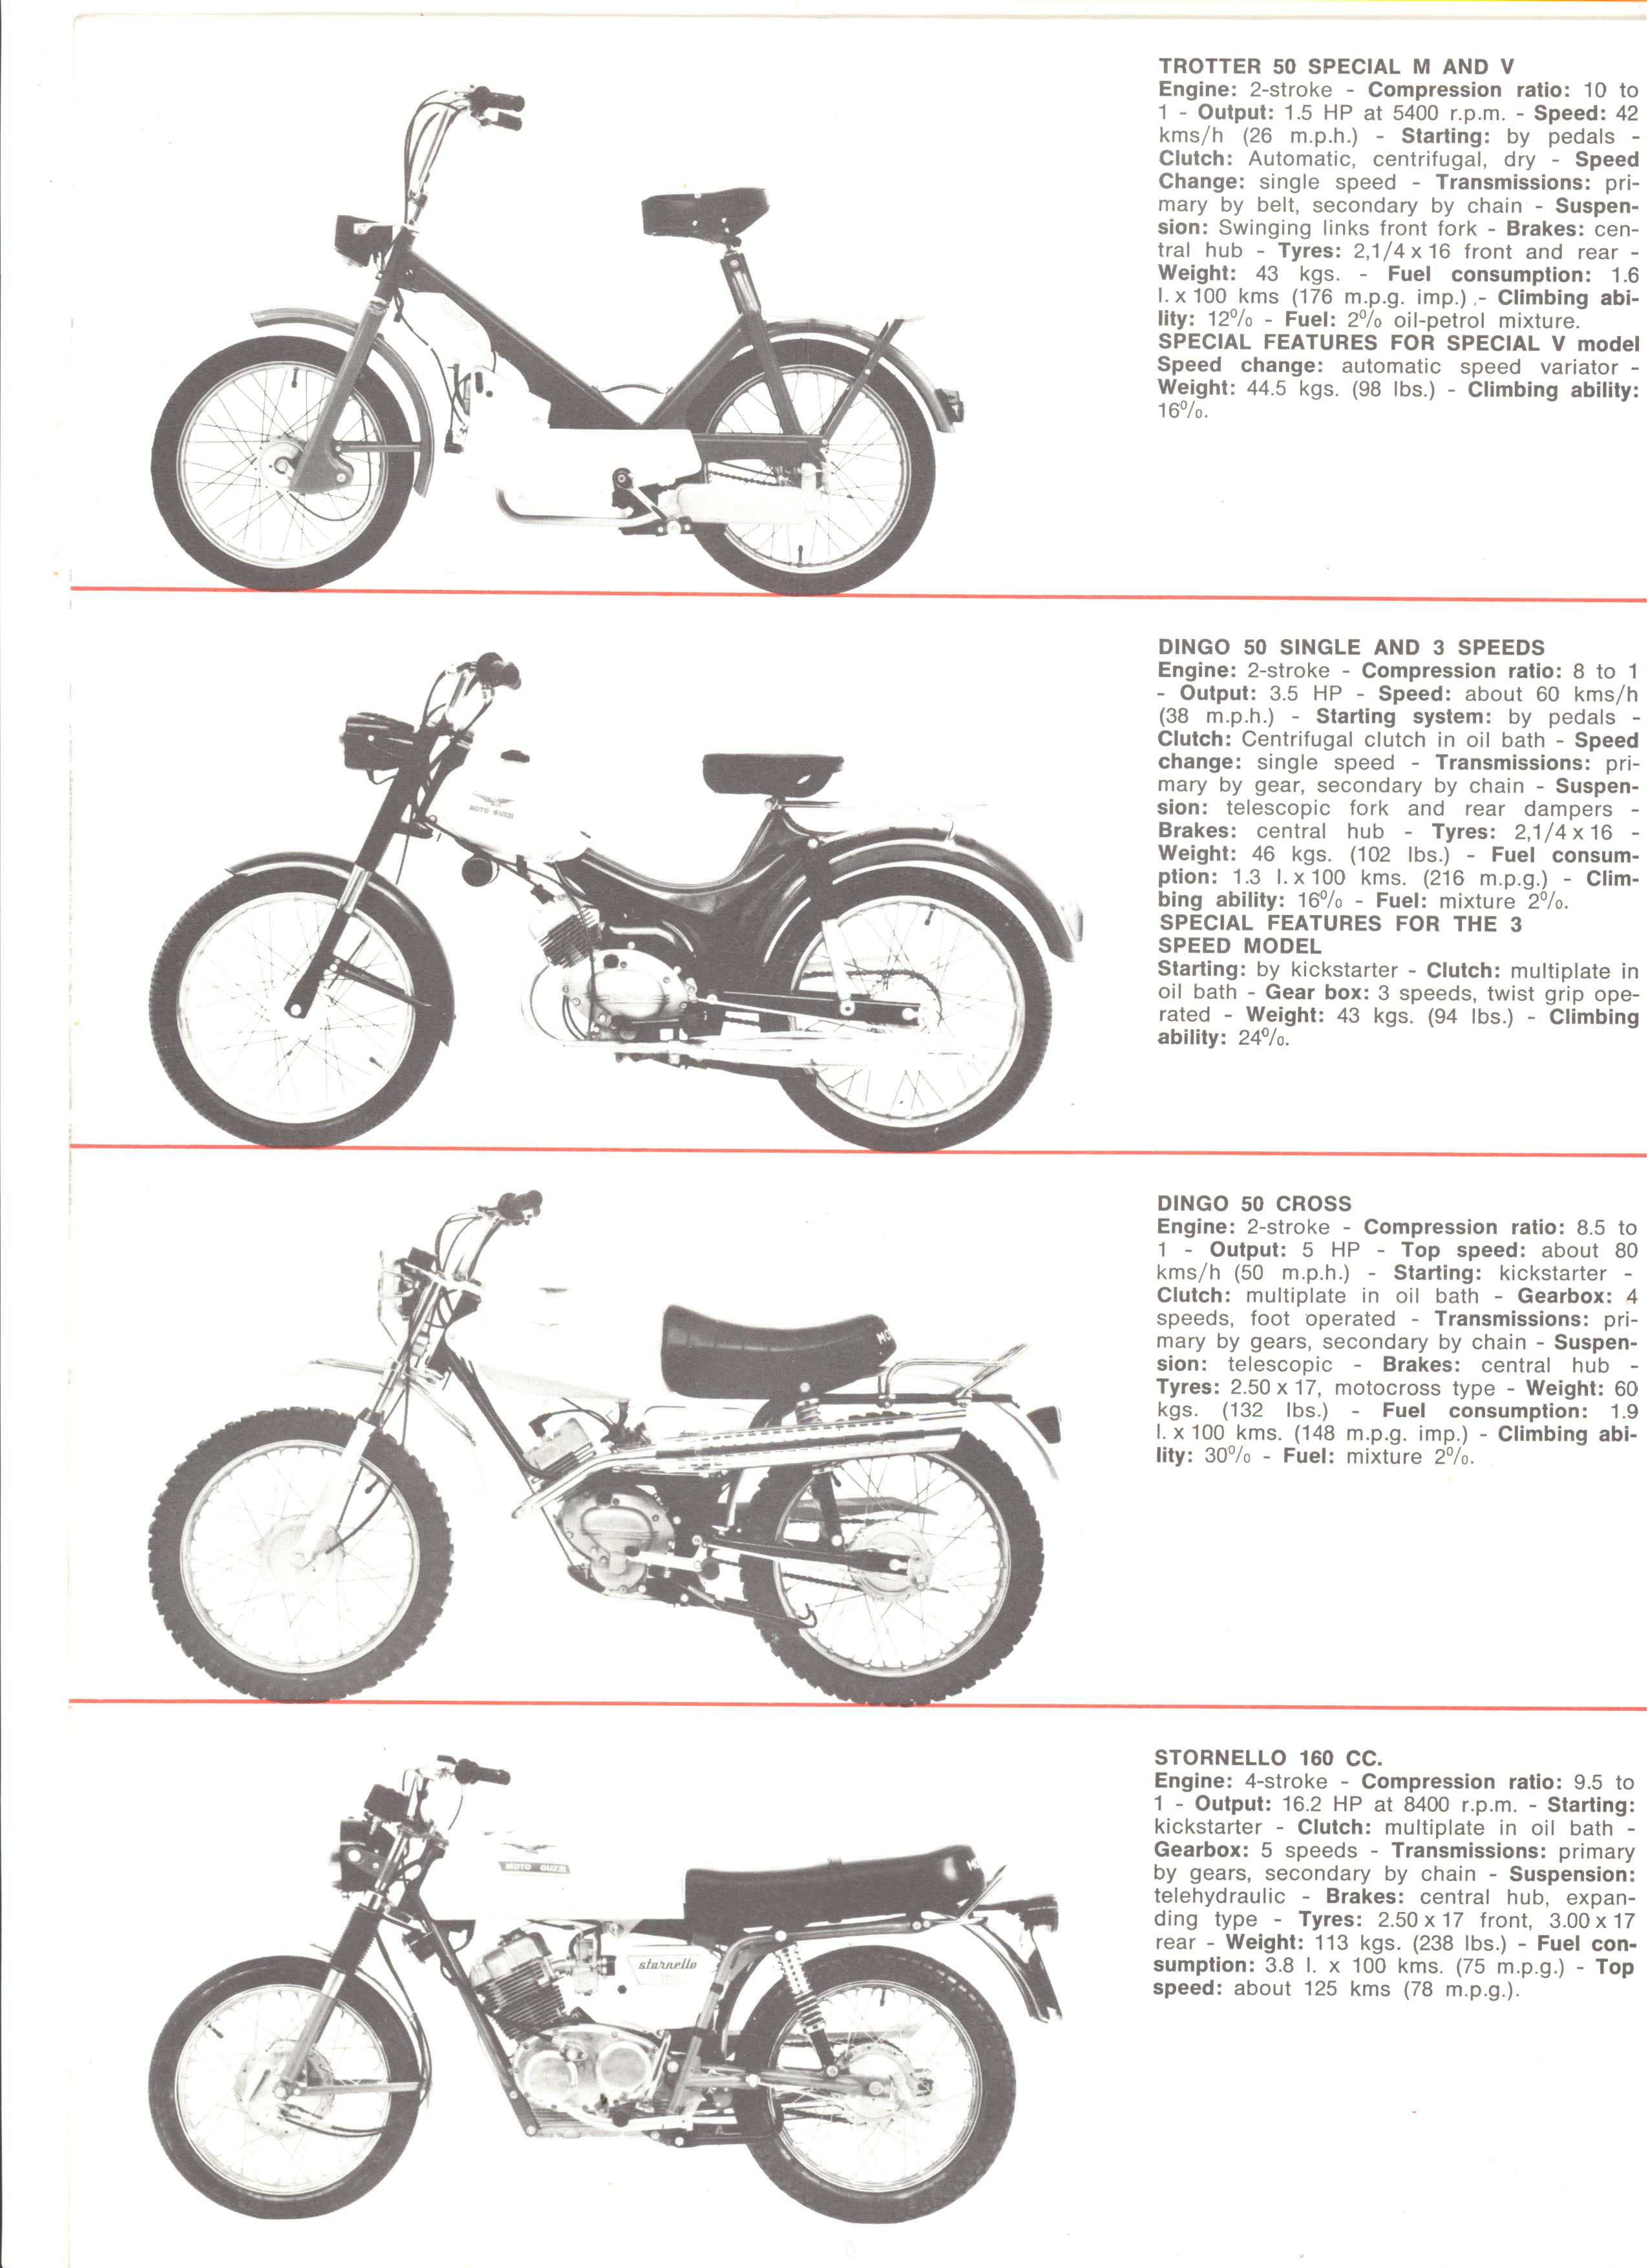 Moto Guzzi factory brochure: 1972 Production Motorcycles